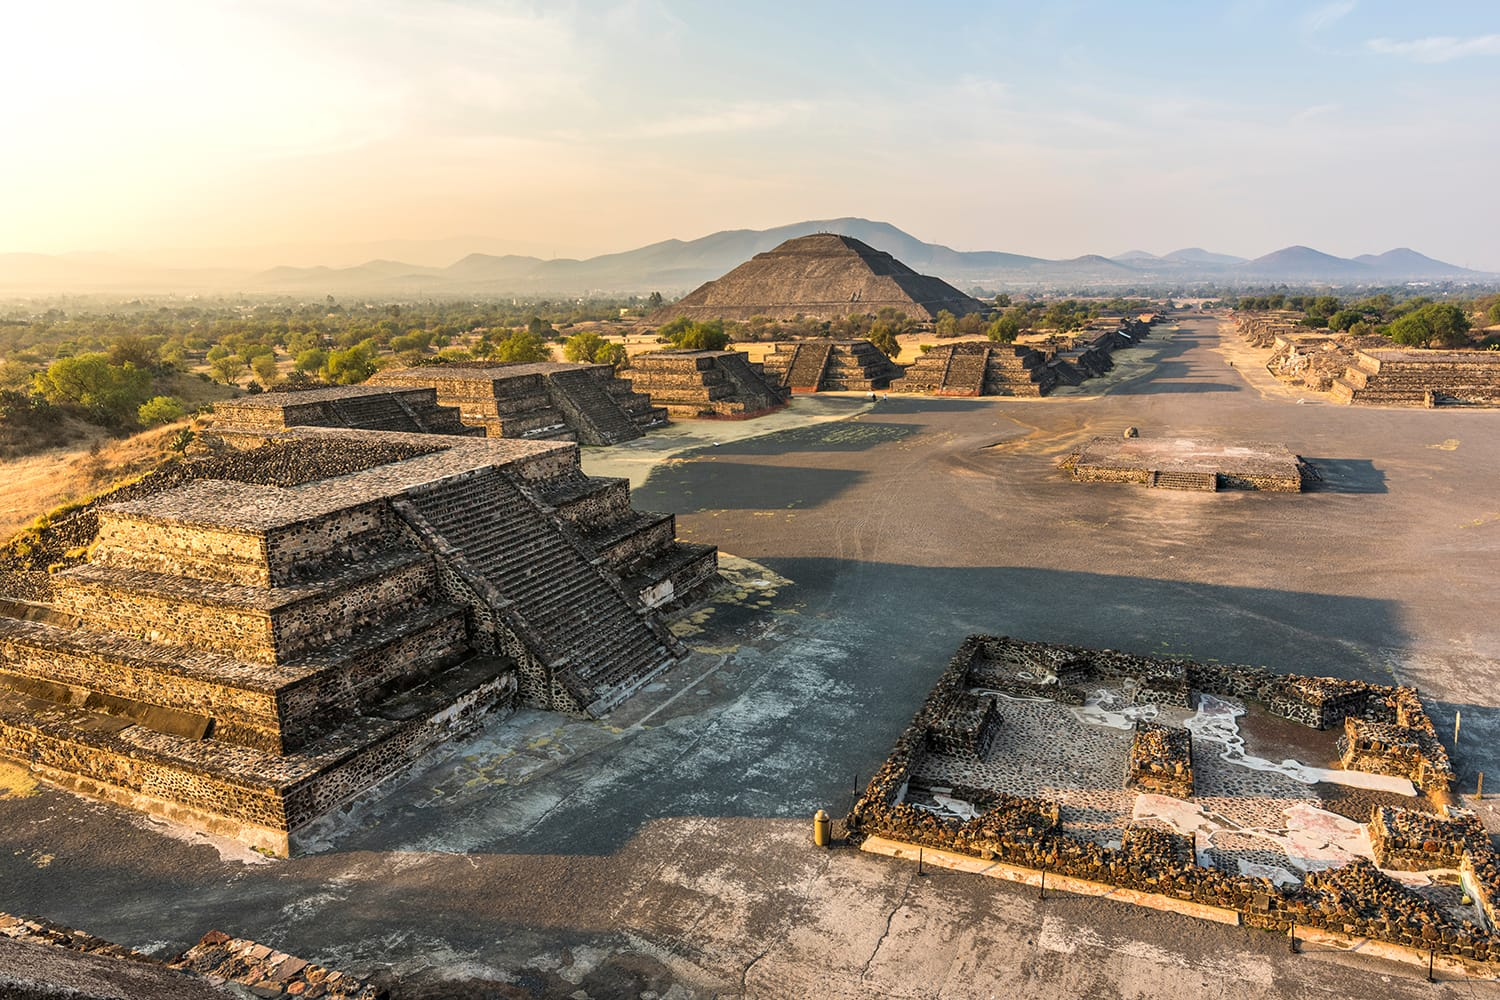 Aerial view of Teotihuacan, near Mexico City in Mexico